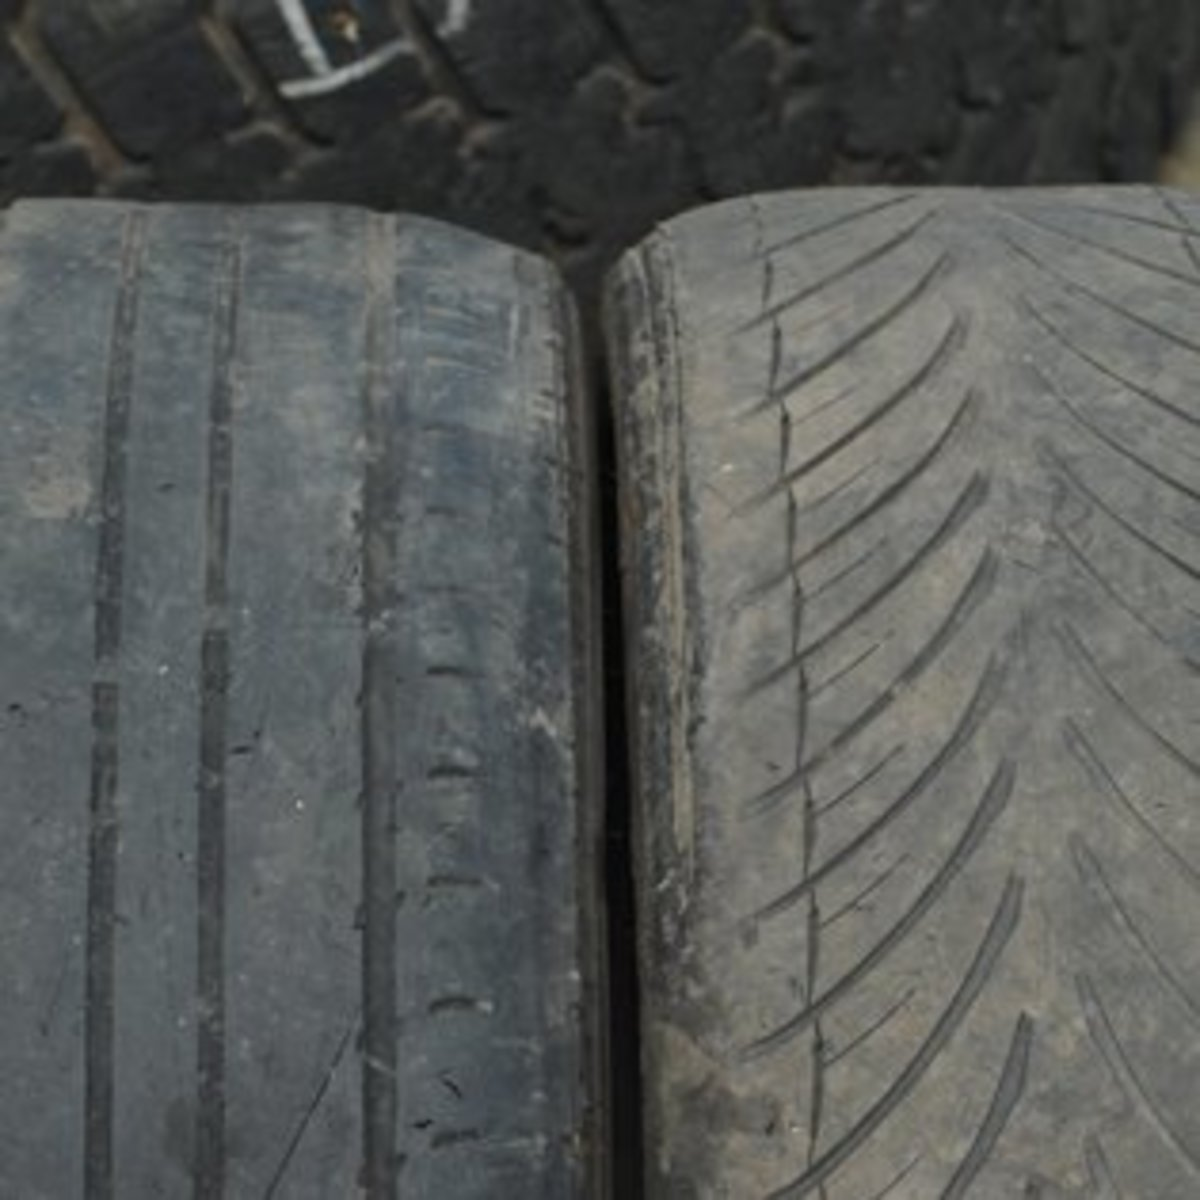 The dealer should replace any worn tyres or reduce the price of the car